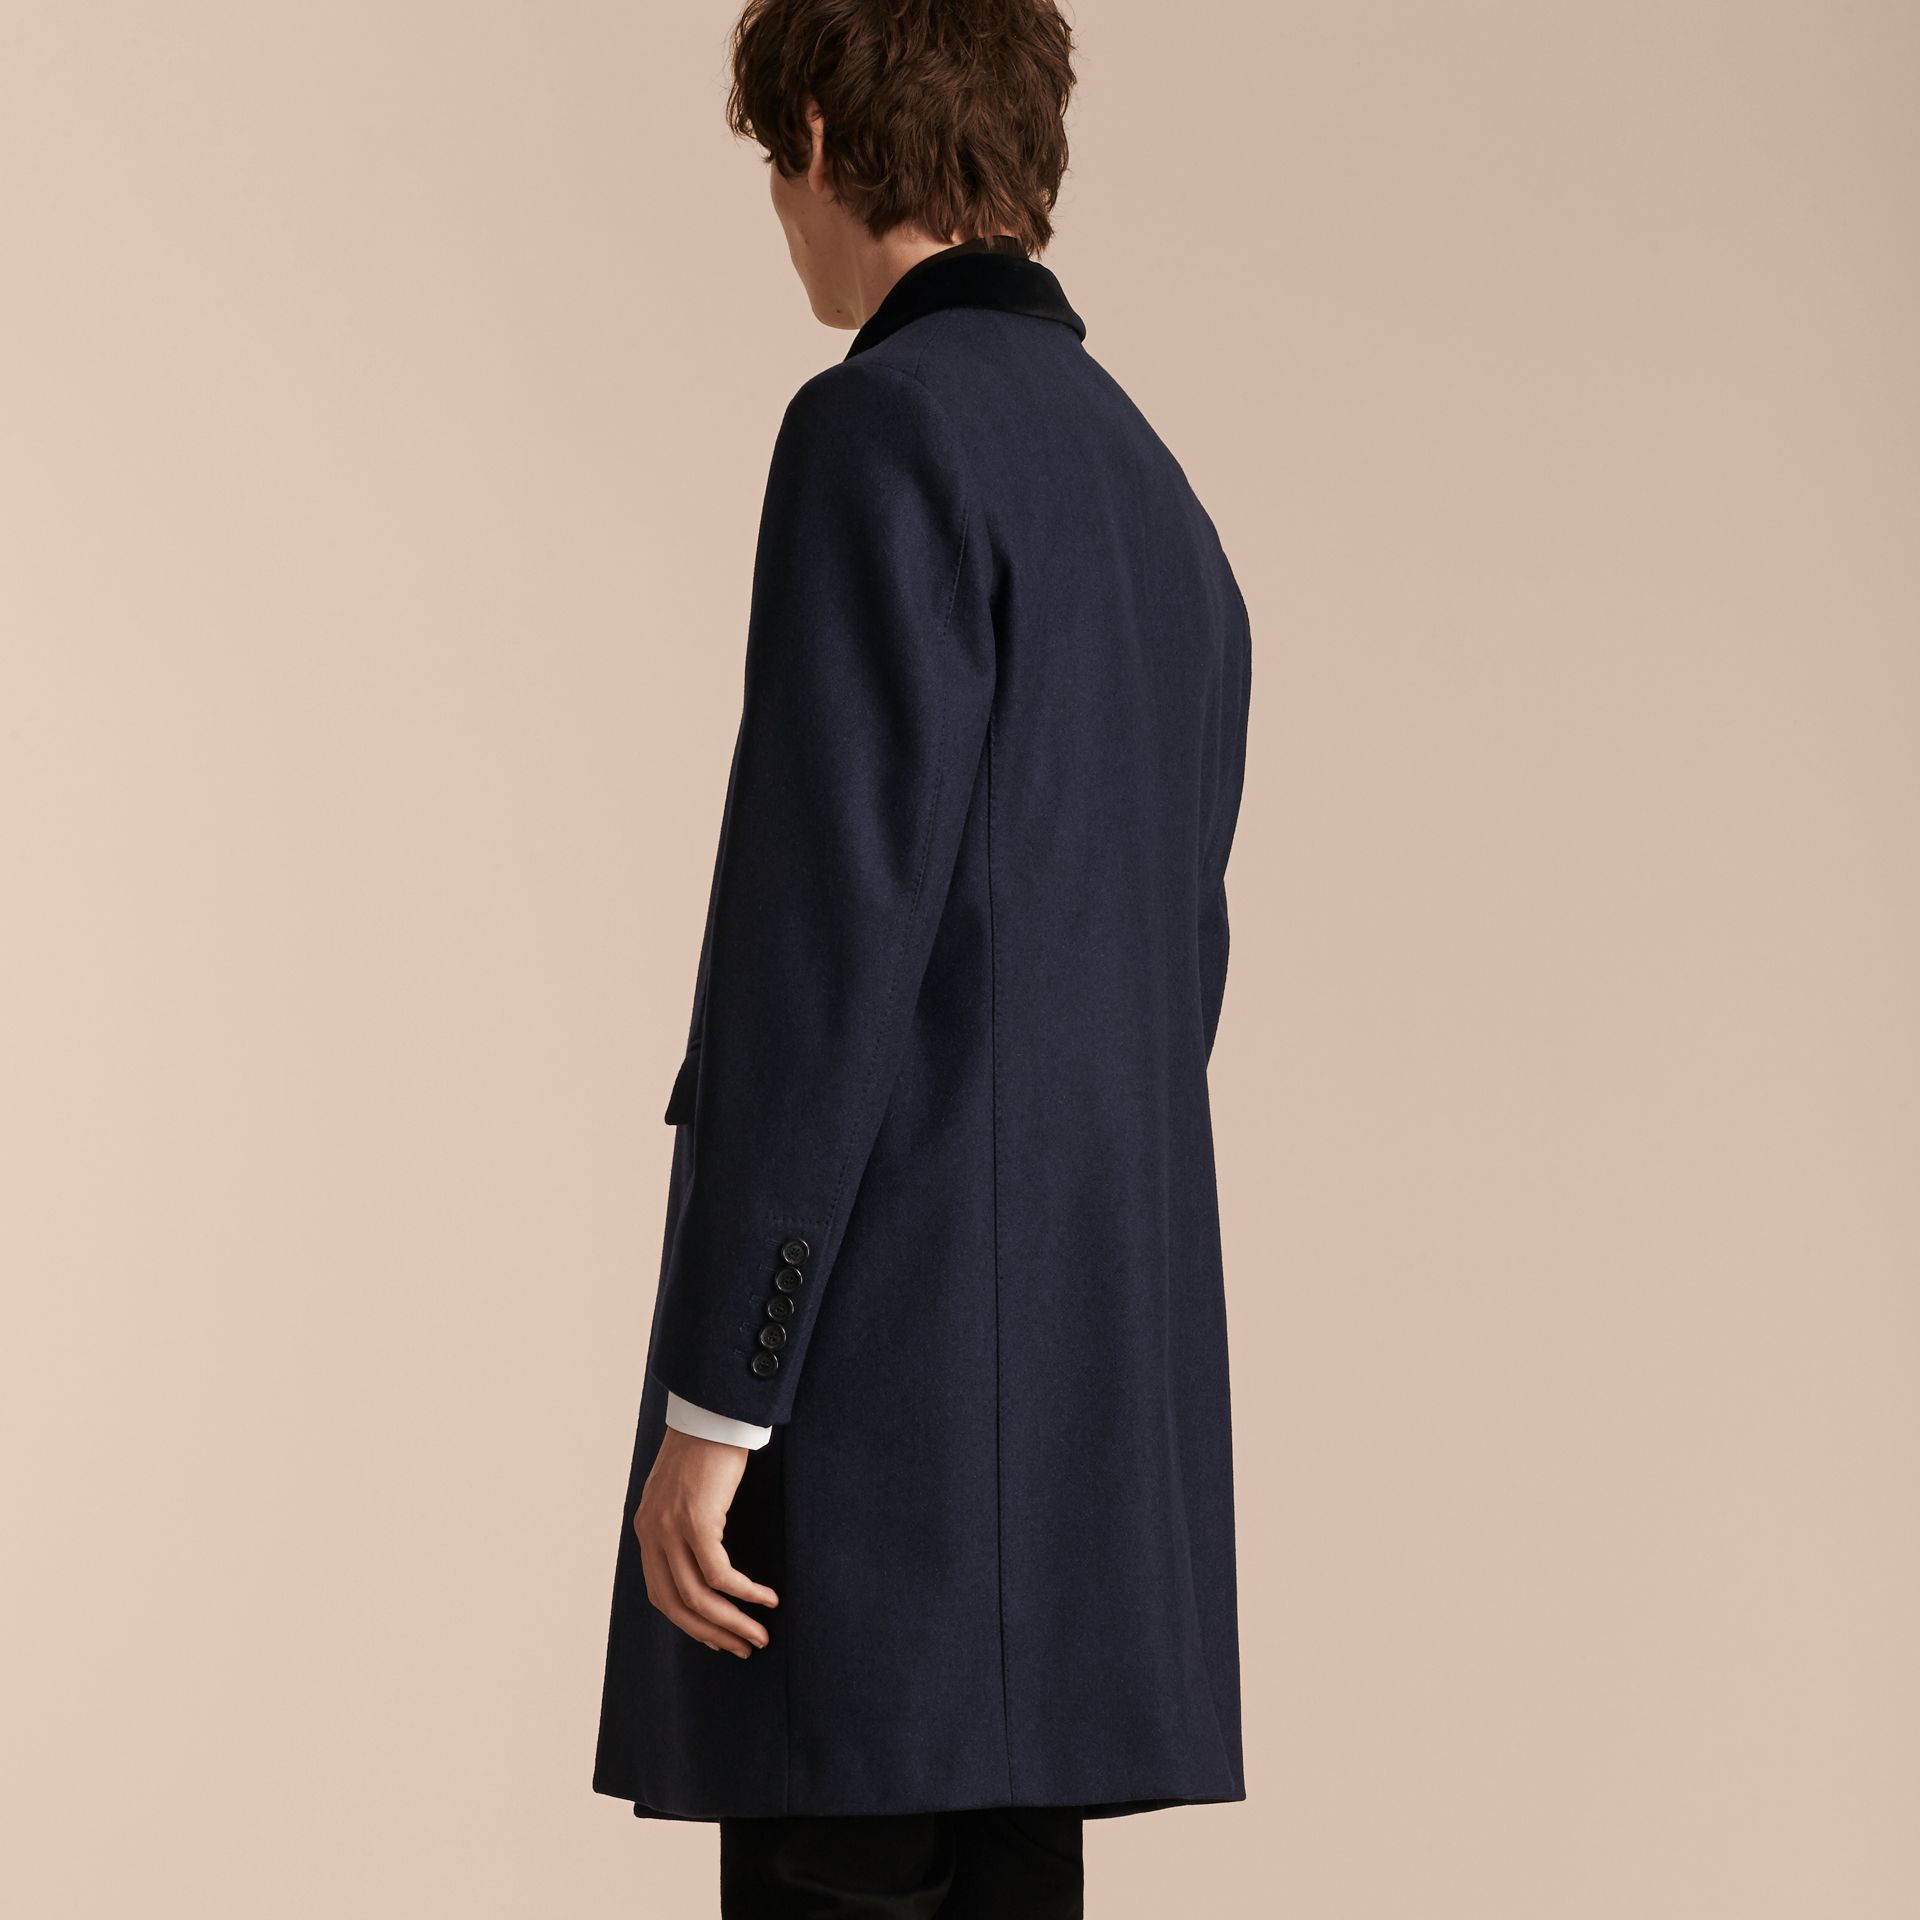 Wool Cashmere Coat with Velvet Collar - gallery image 3